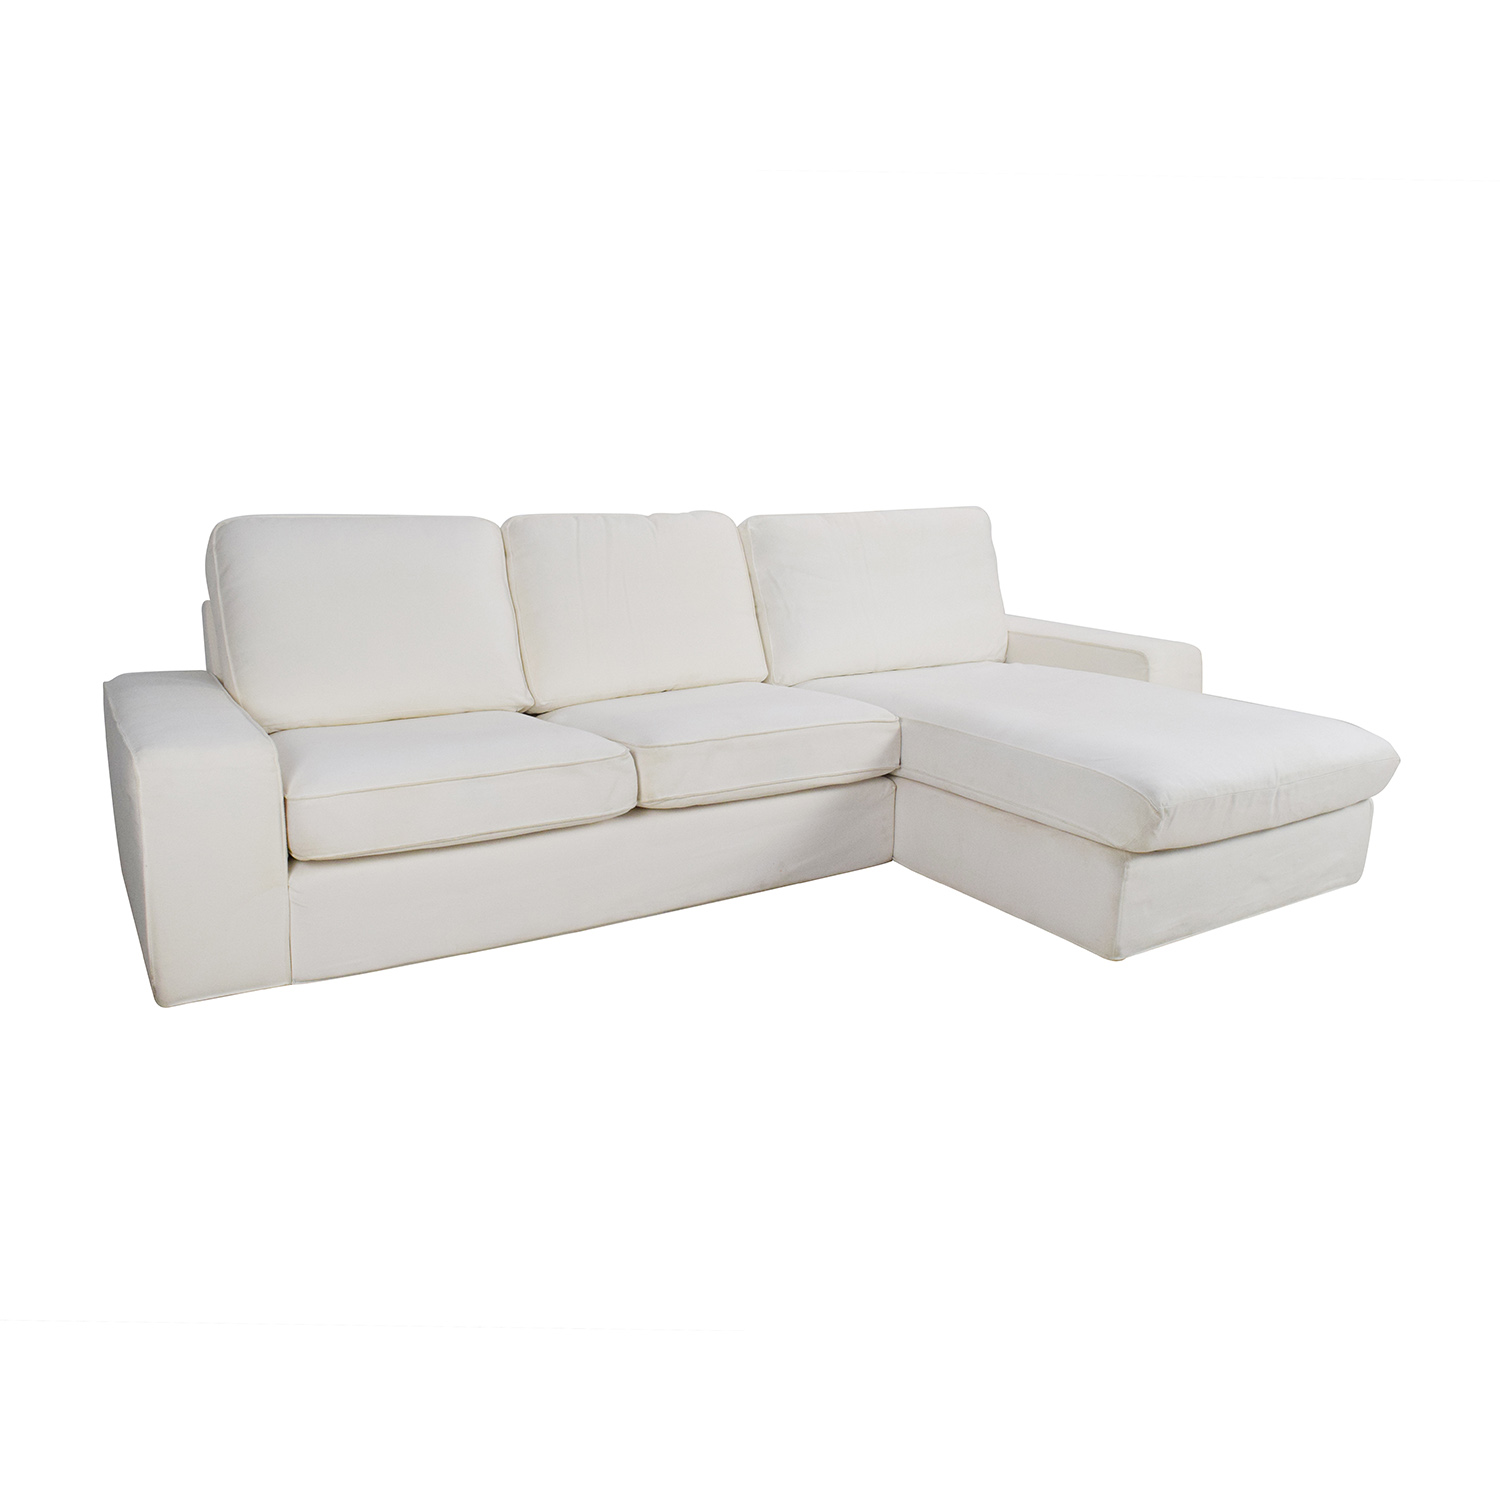 ... Buy IKEA Kivik Sofa And Chaise IKEA ...